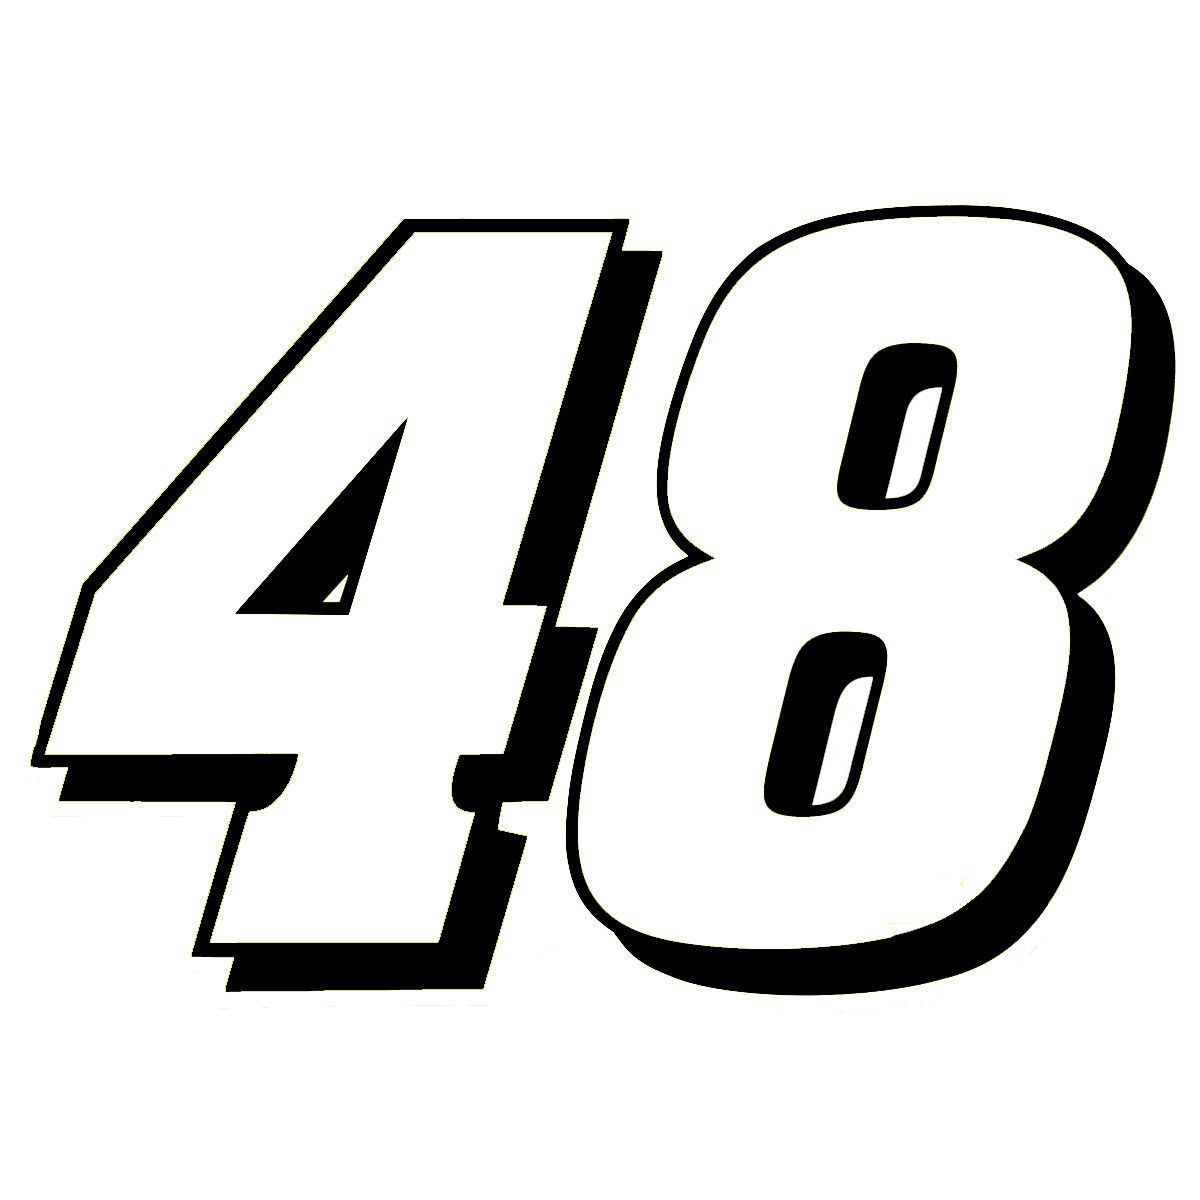 "Primary image for 4"" Jimmie Johnson Number 48 Window Decal Vinyl Sticker Hendrick Motorsports"